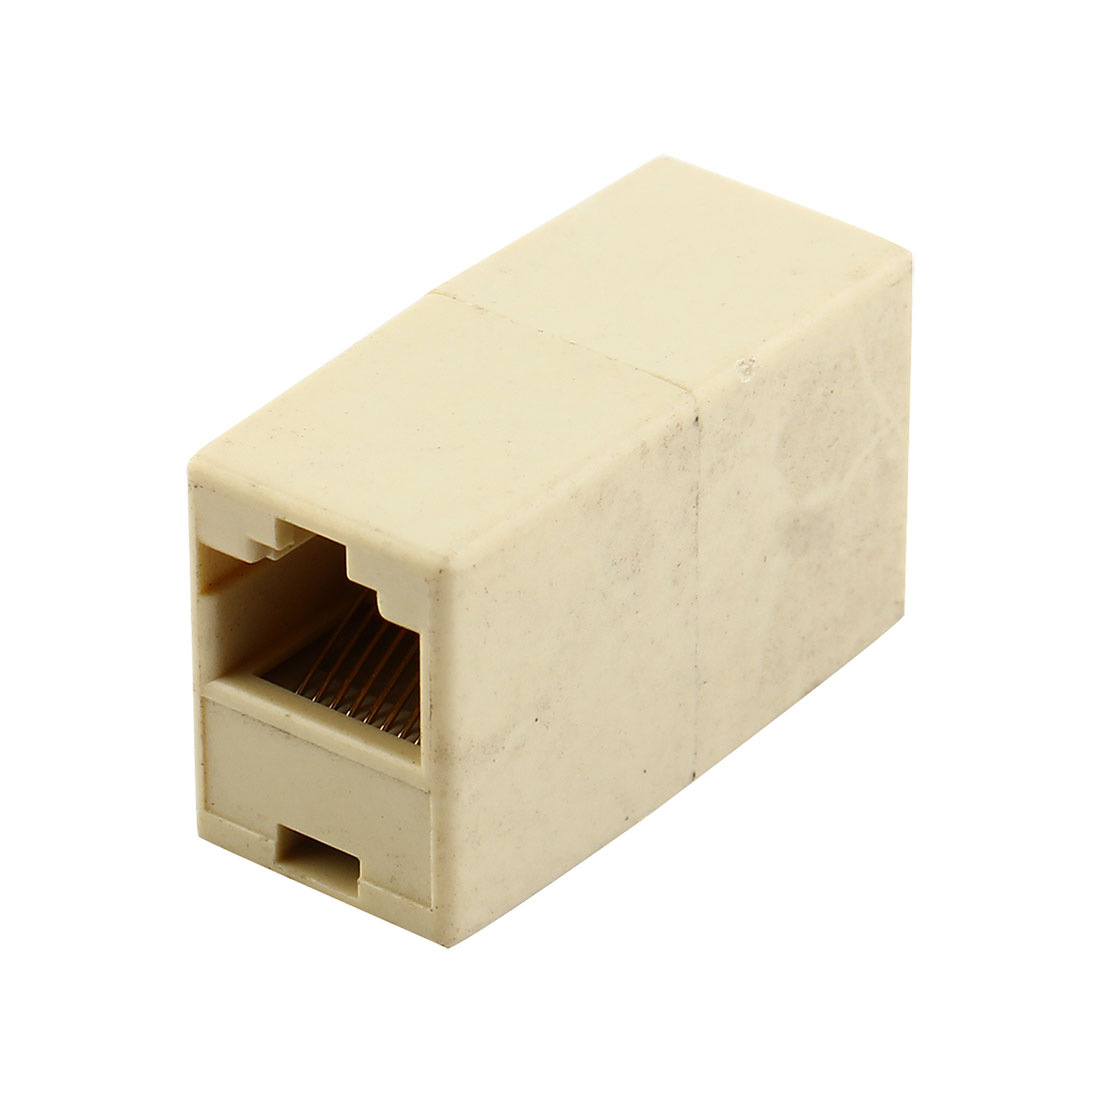 RJ45 8P8C Female Internet Network Inline Cable Coupler Connector Adapter Beige